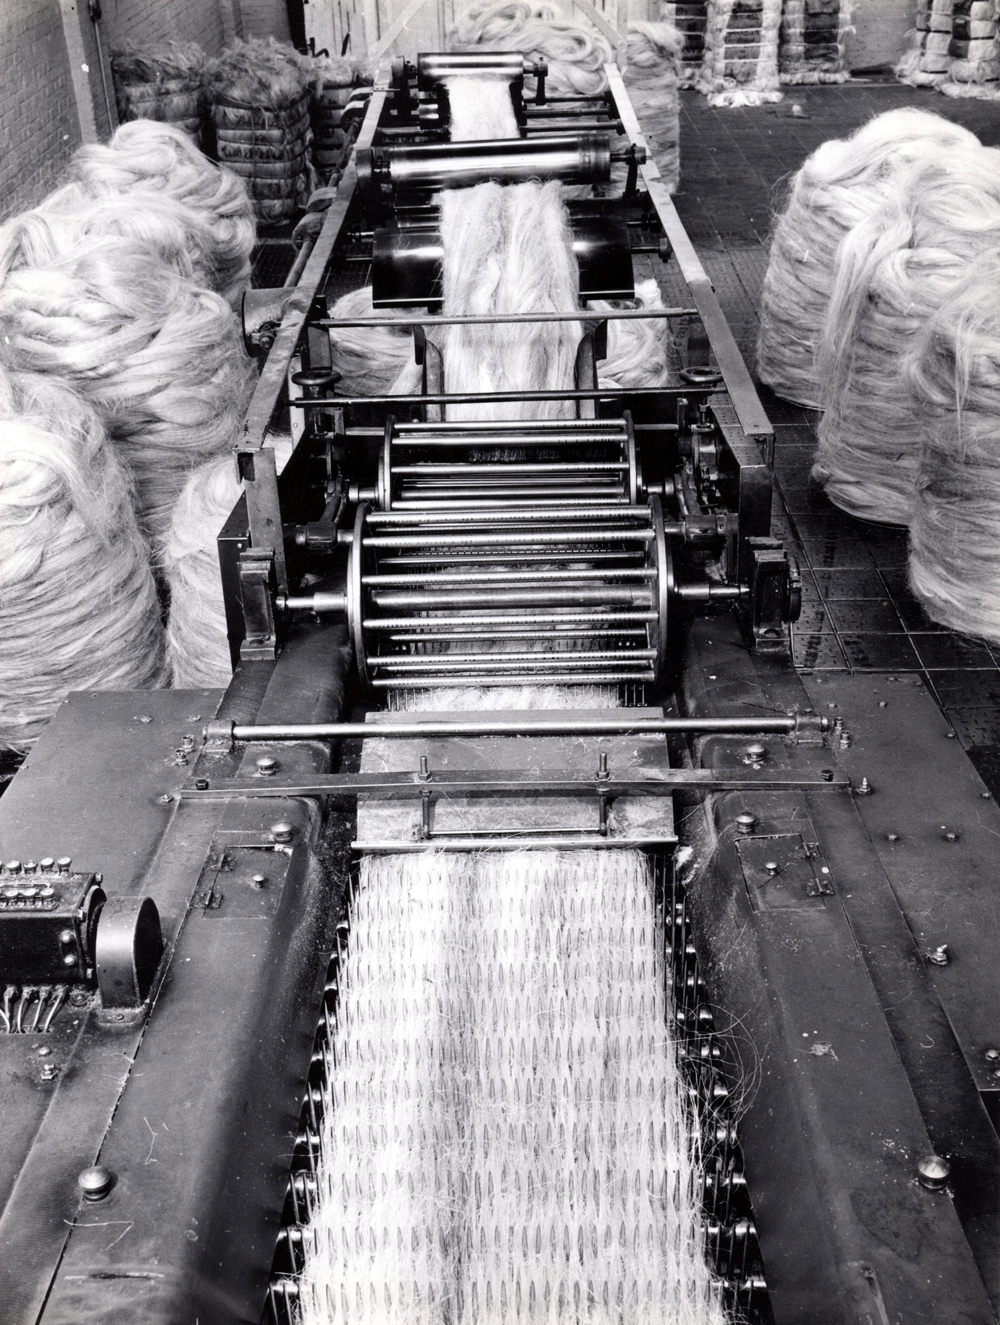 Sisal Being Passed Over Combing Machine With Sharp Steel Teeth 1960s